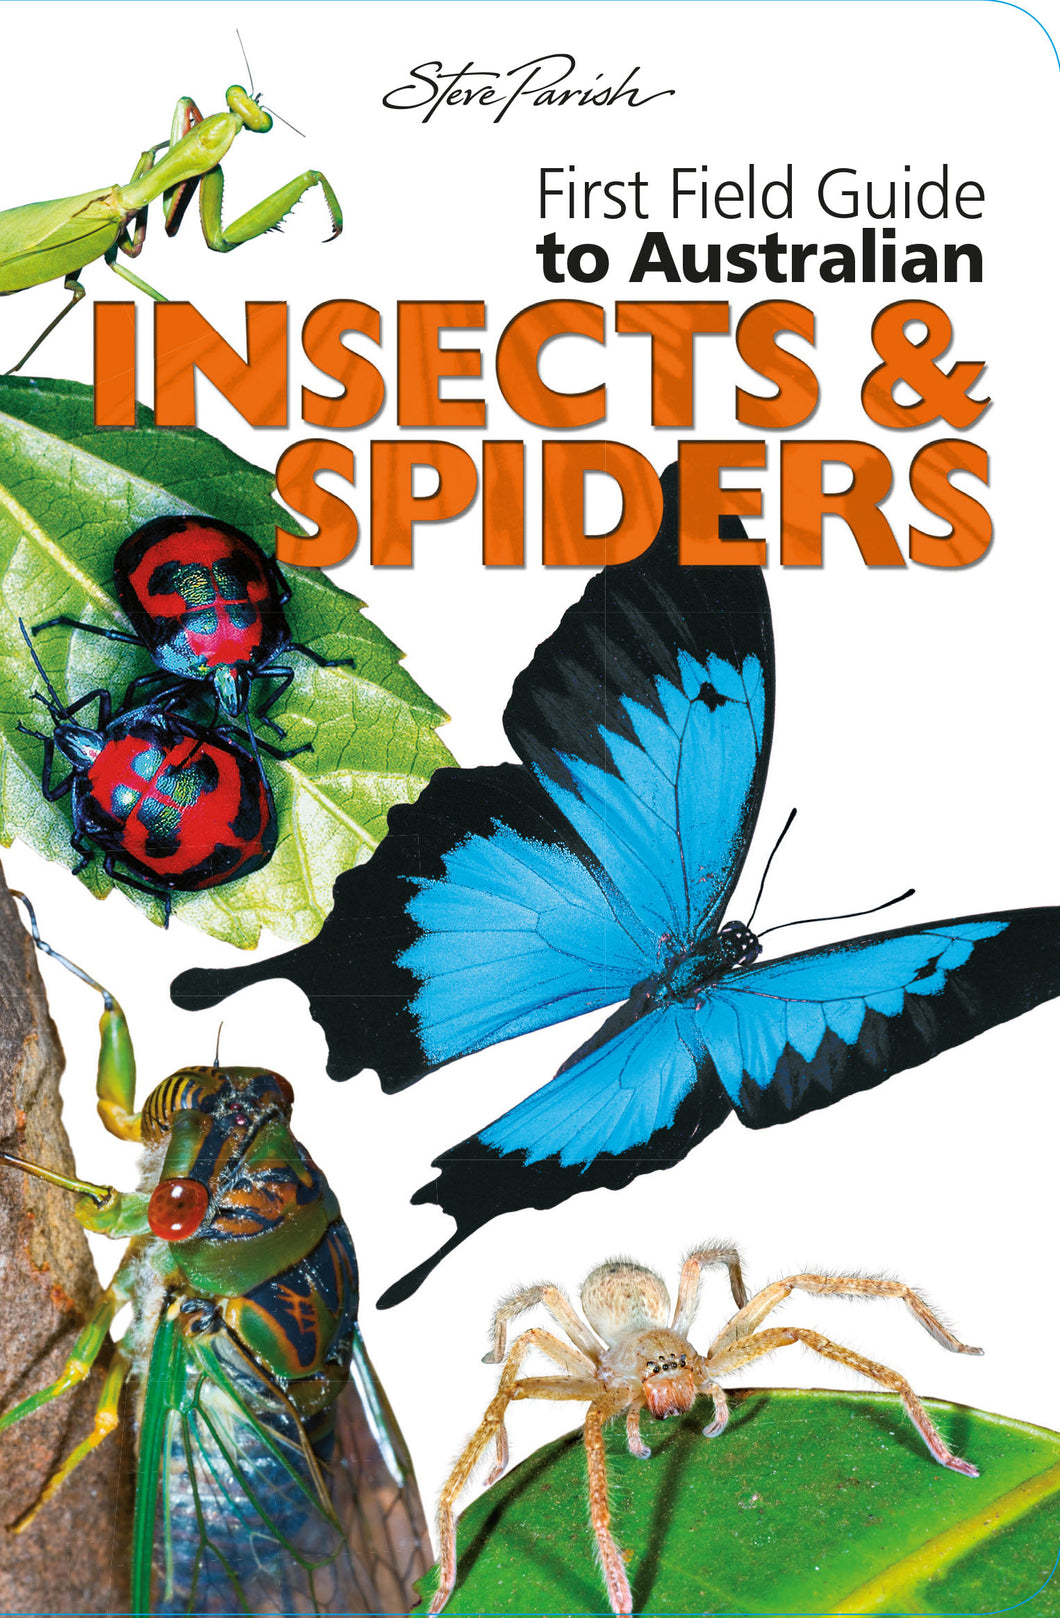 Steve Parish First Field Guides: Australian Insects & Spiders